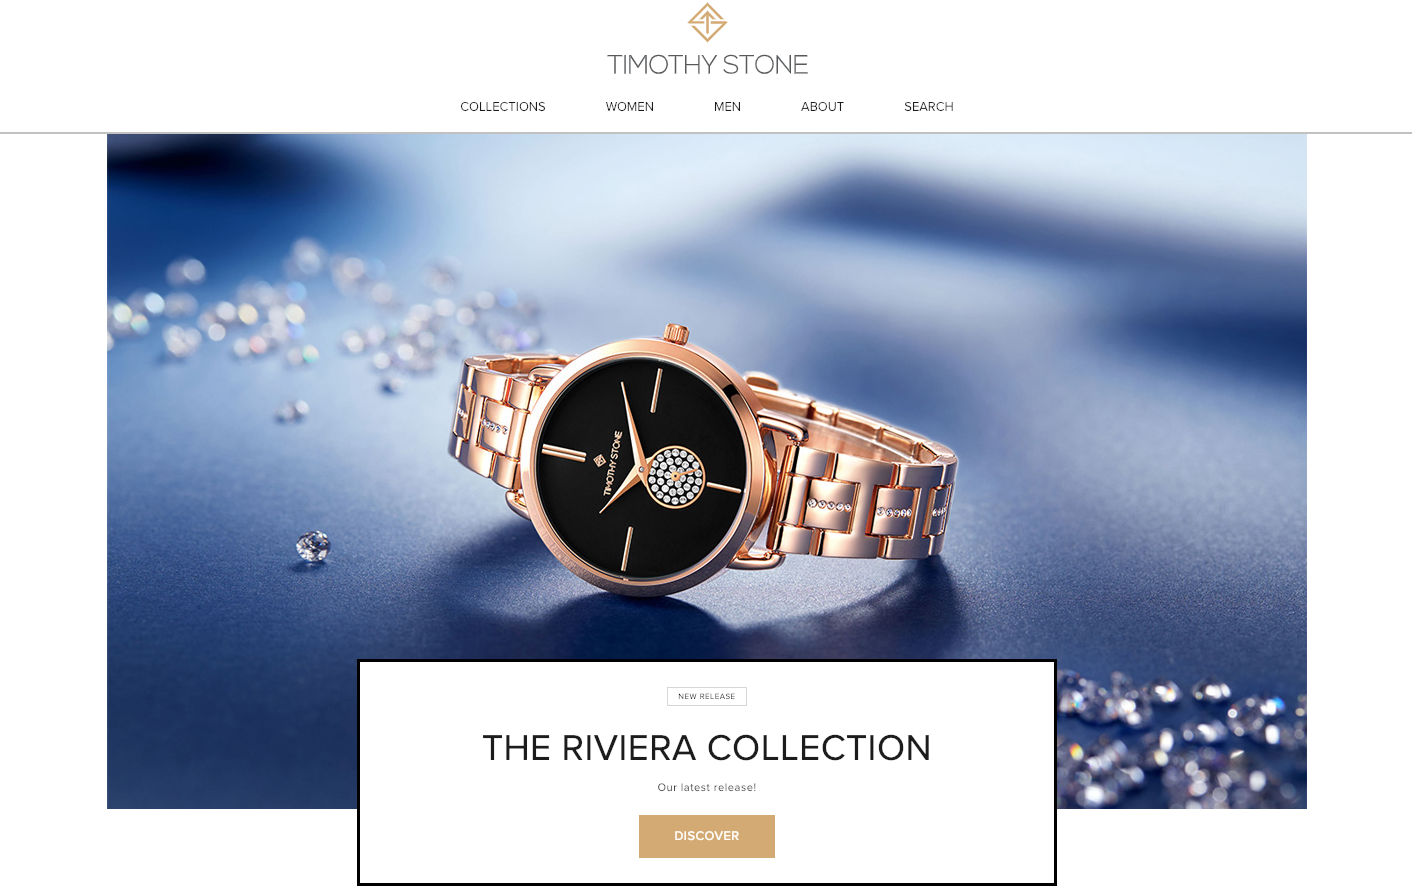 Timonthy Stone Watches homepage.